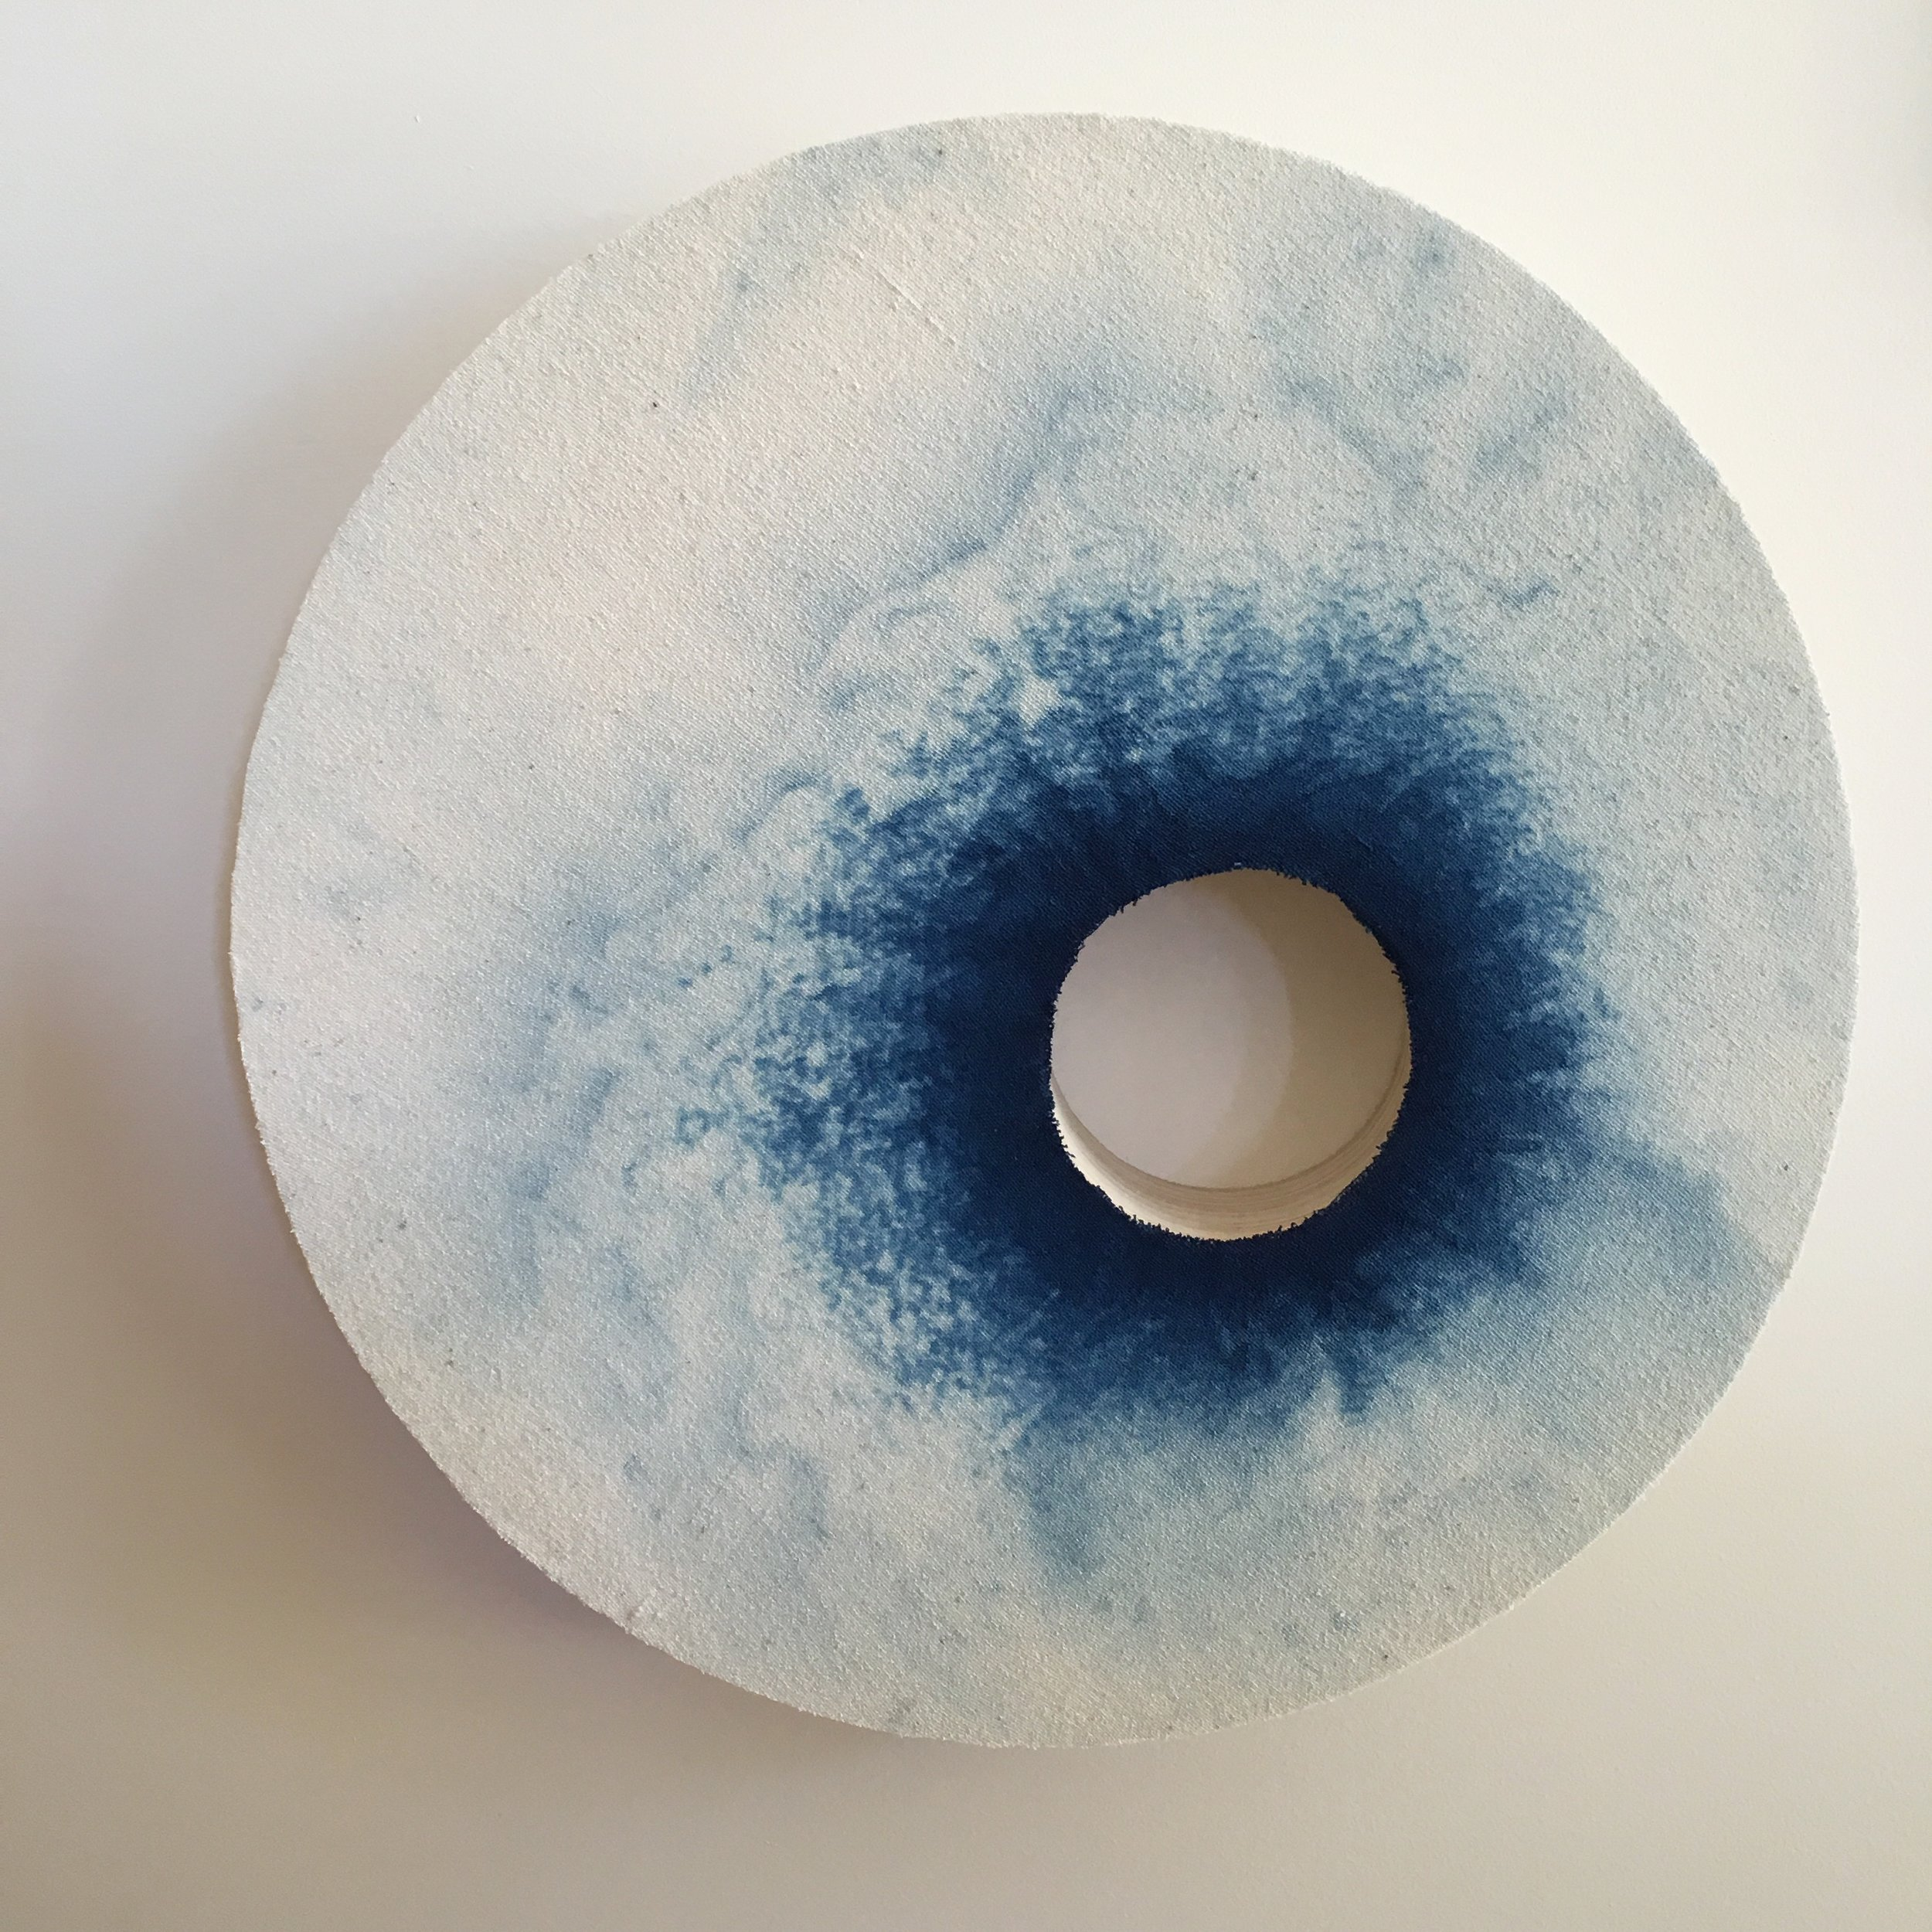 SOLD Indigo with a void    Indigo dyed linen mounted onto layered plywood 340 x 340 x 40